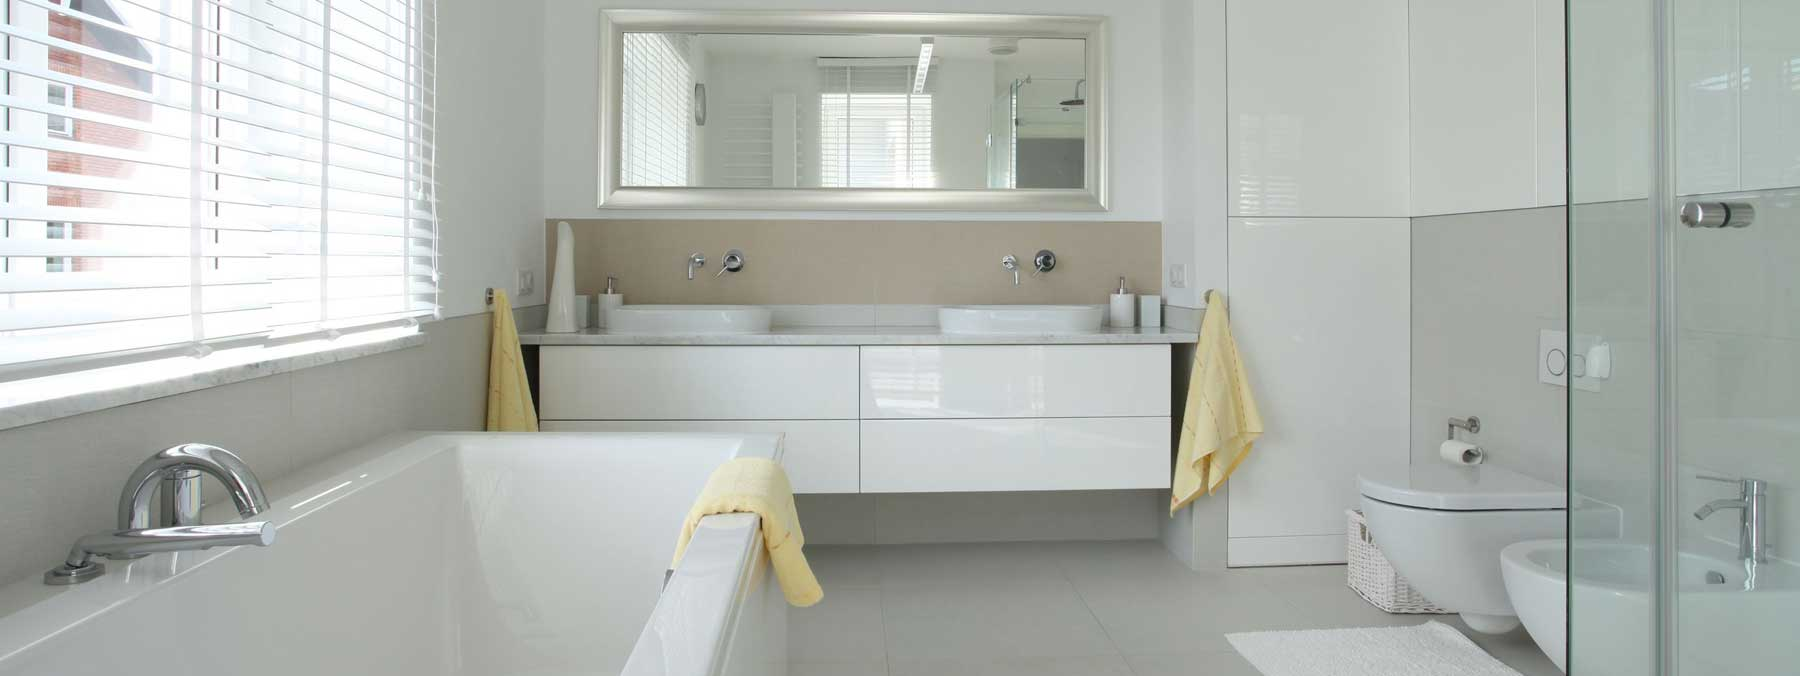 New 50 bathroom renovations sydney cost design ideas of for Complete bathroom remodel